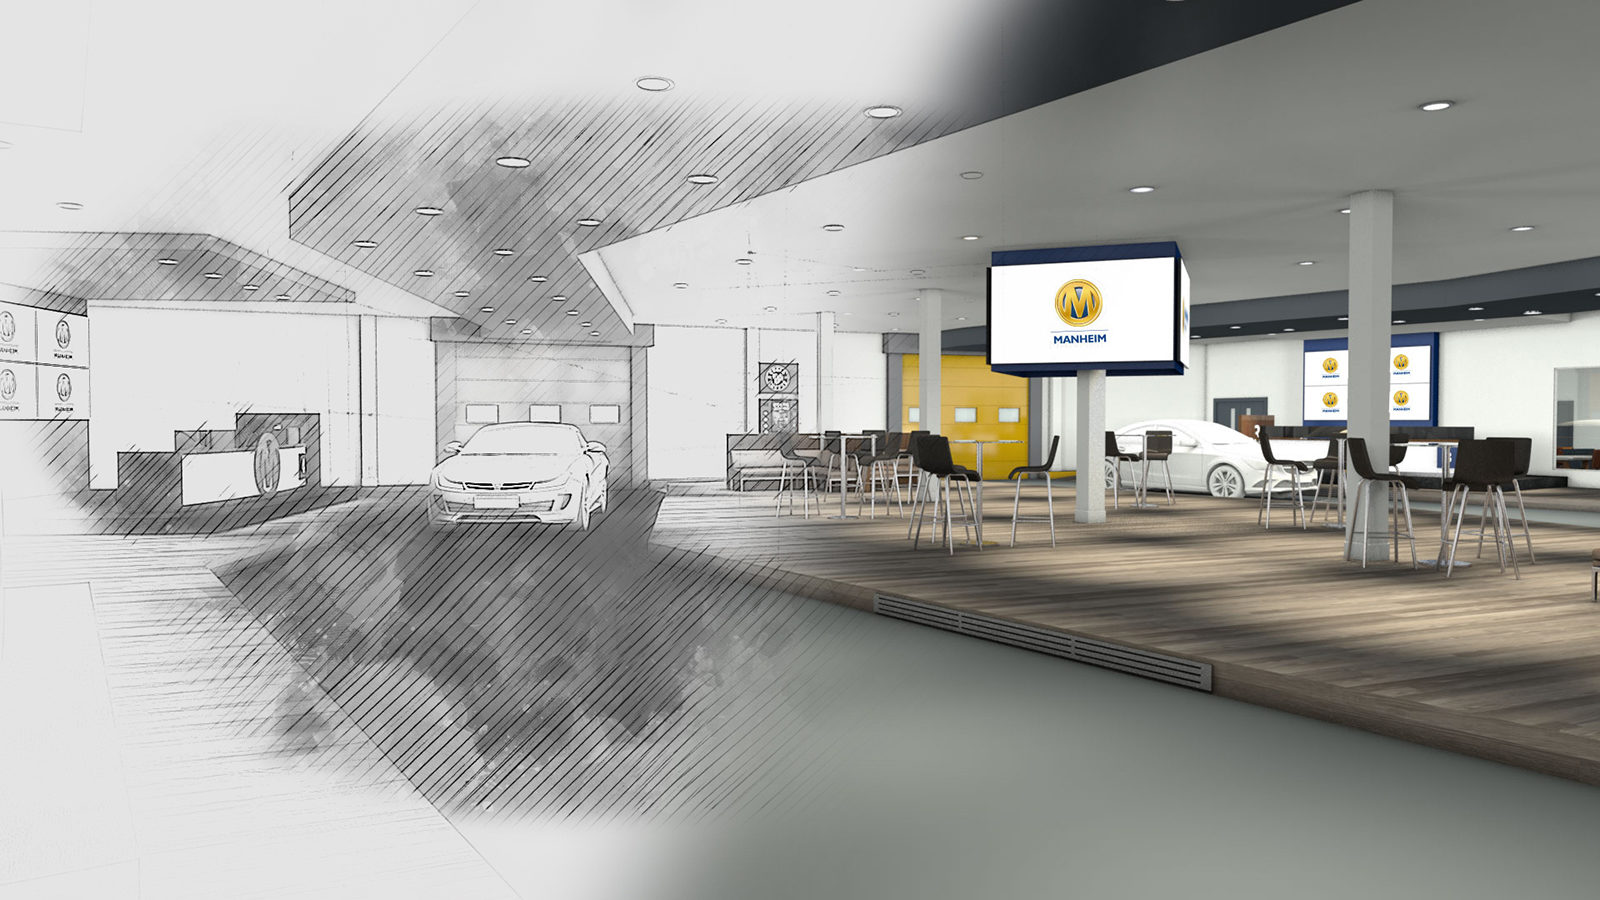 Manheim Bruntingthorpe guest experience designs, completed by Katapult